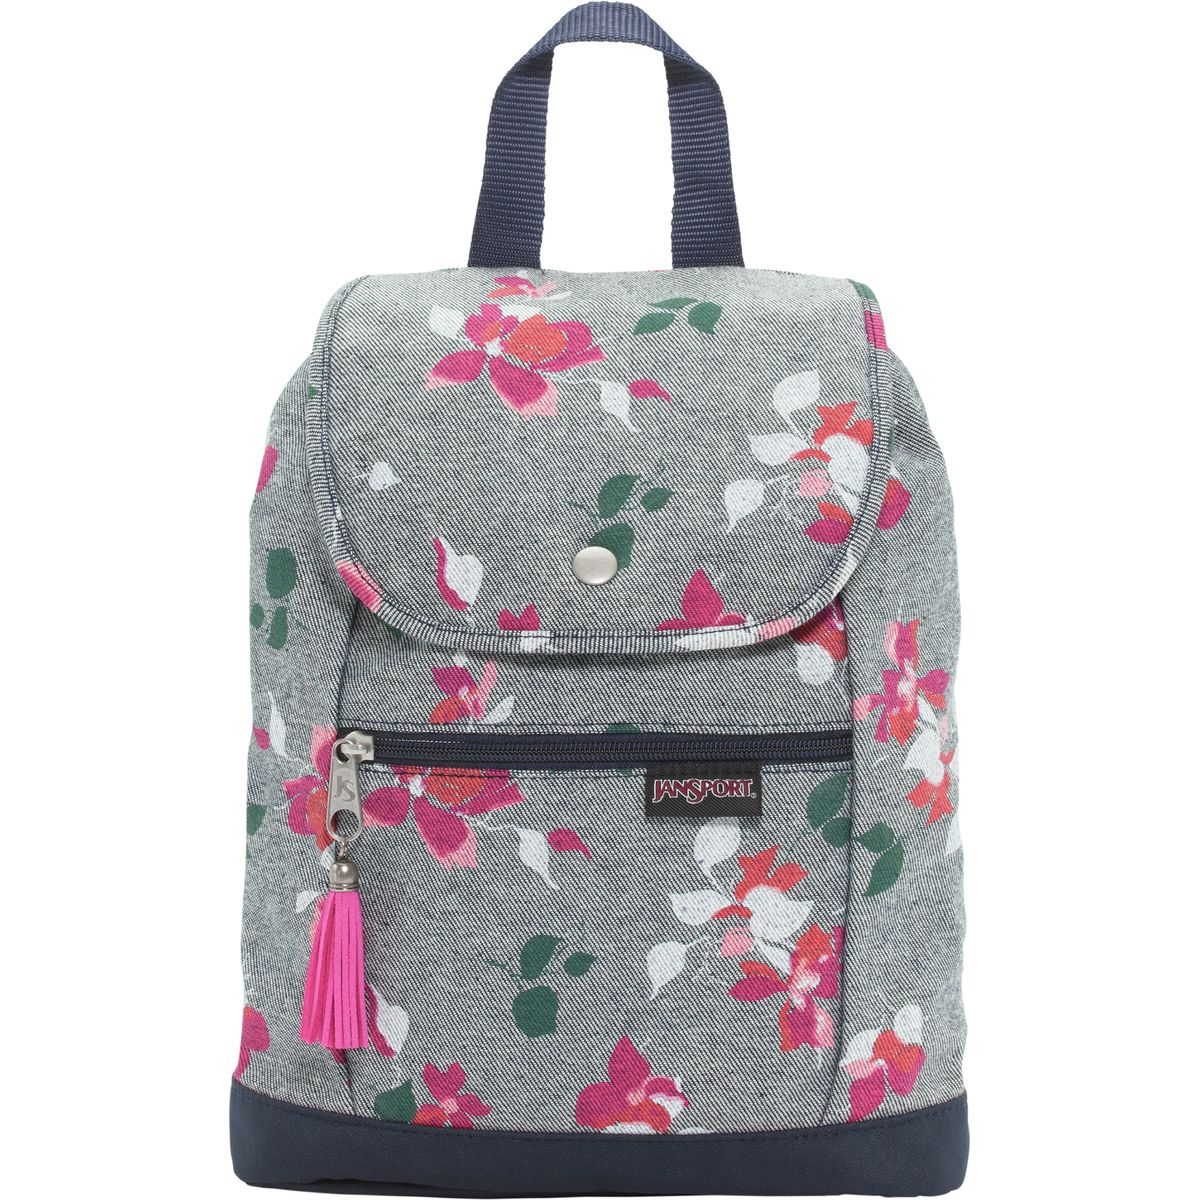 Model JanSport Super Break Backpack